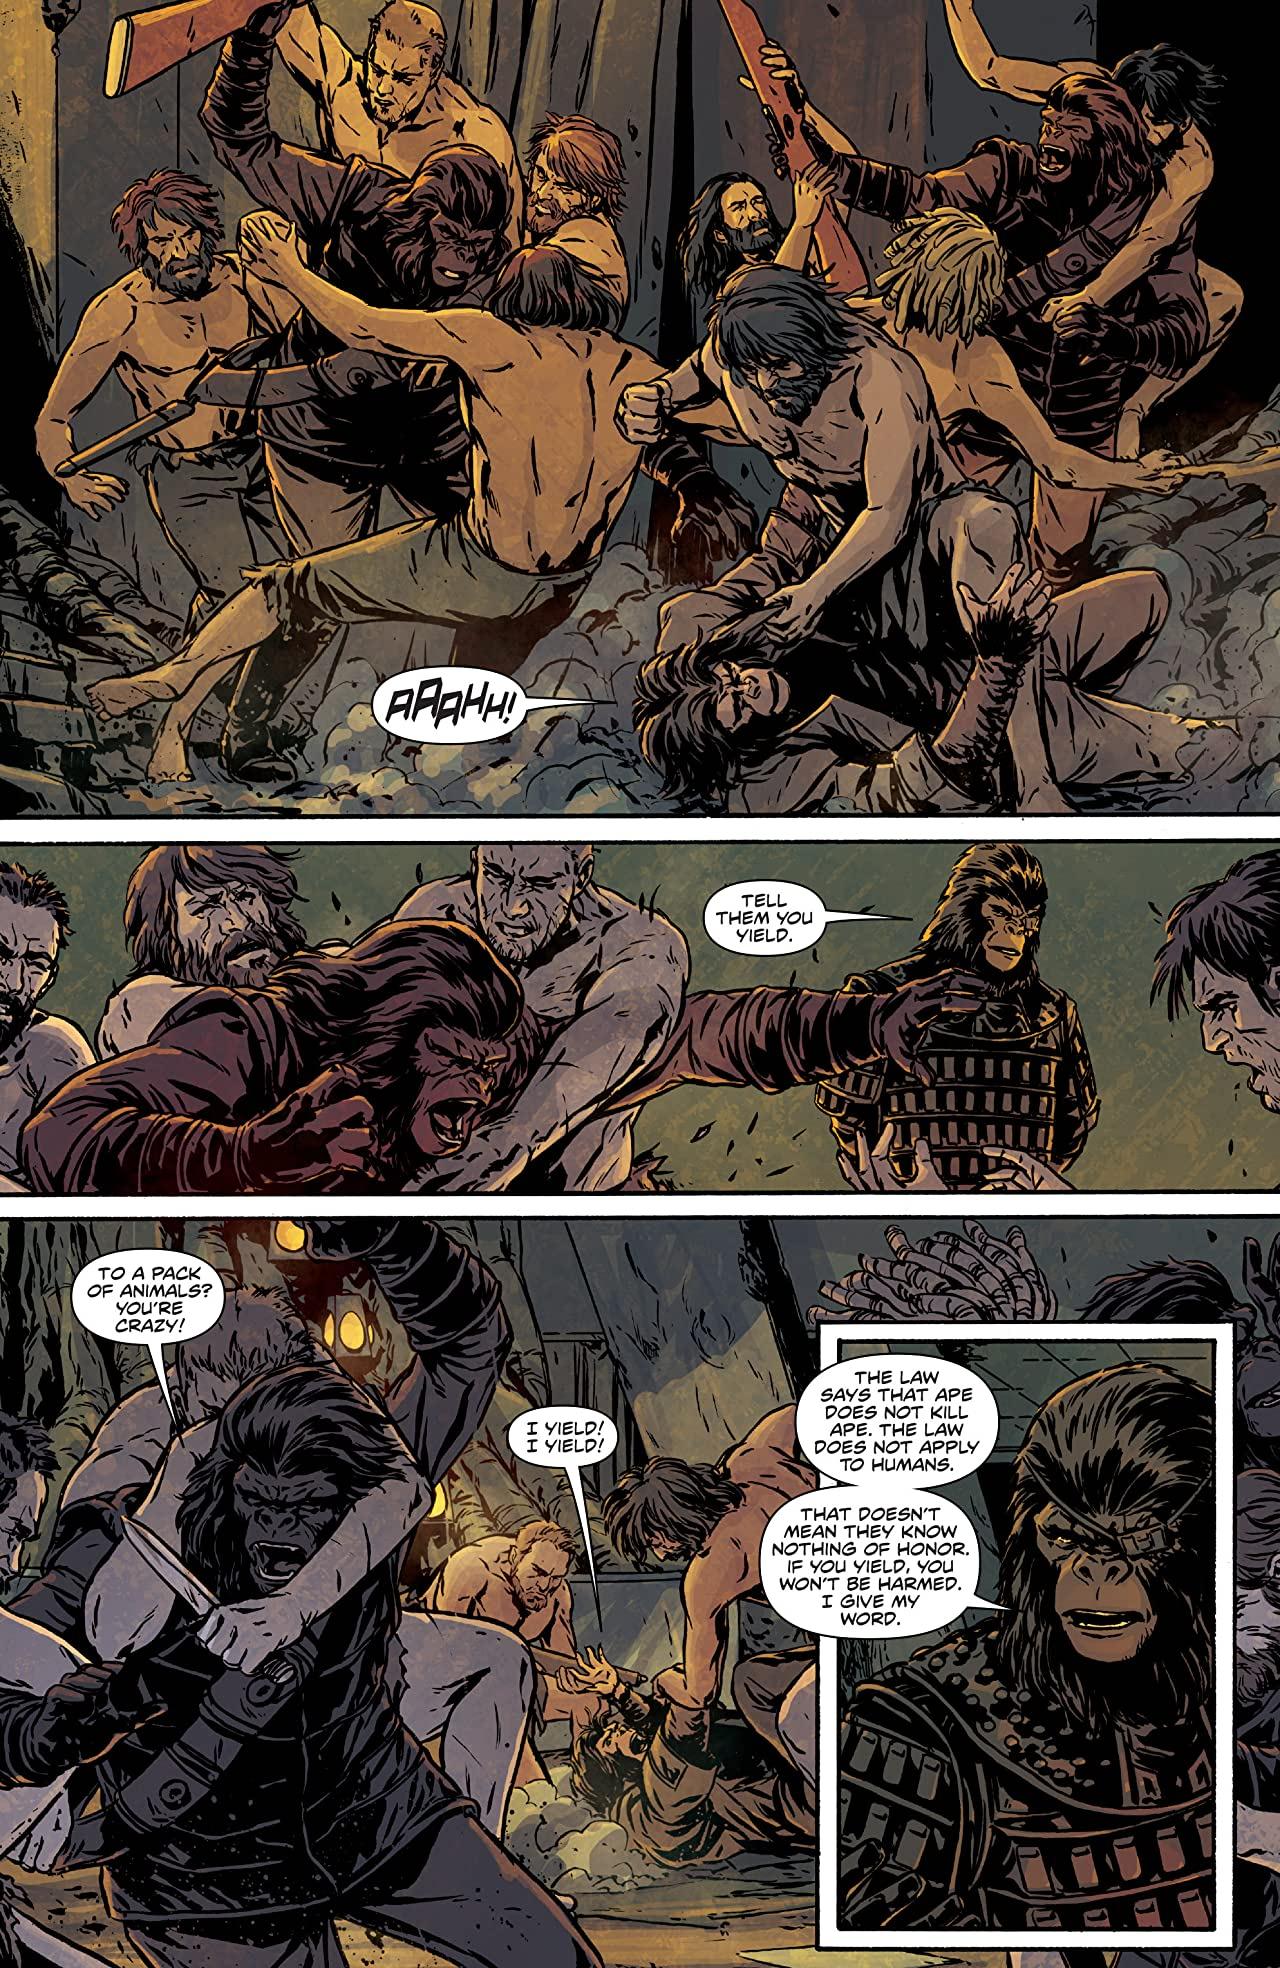 Exile on the Planet of the Apes #3